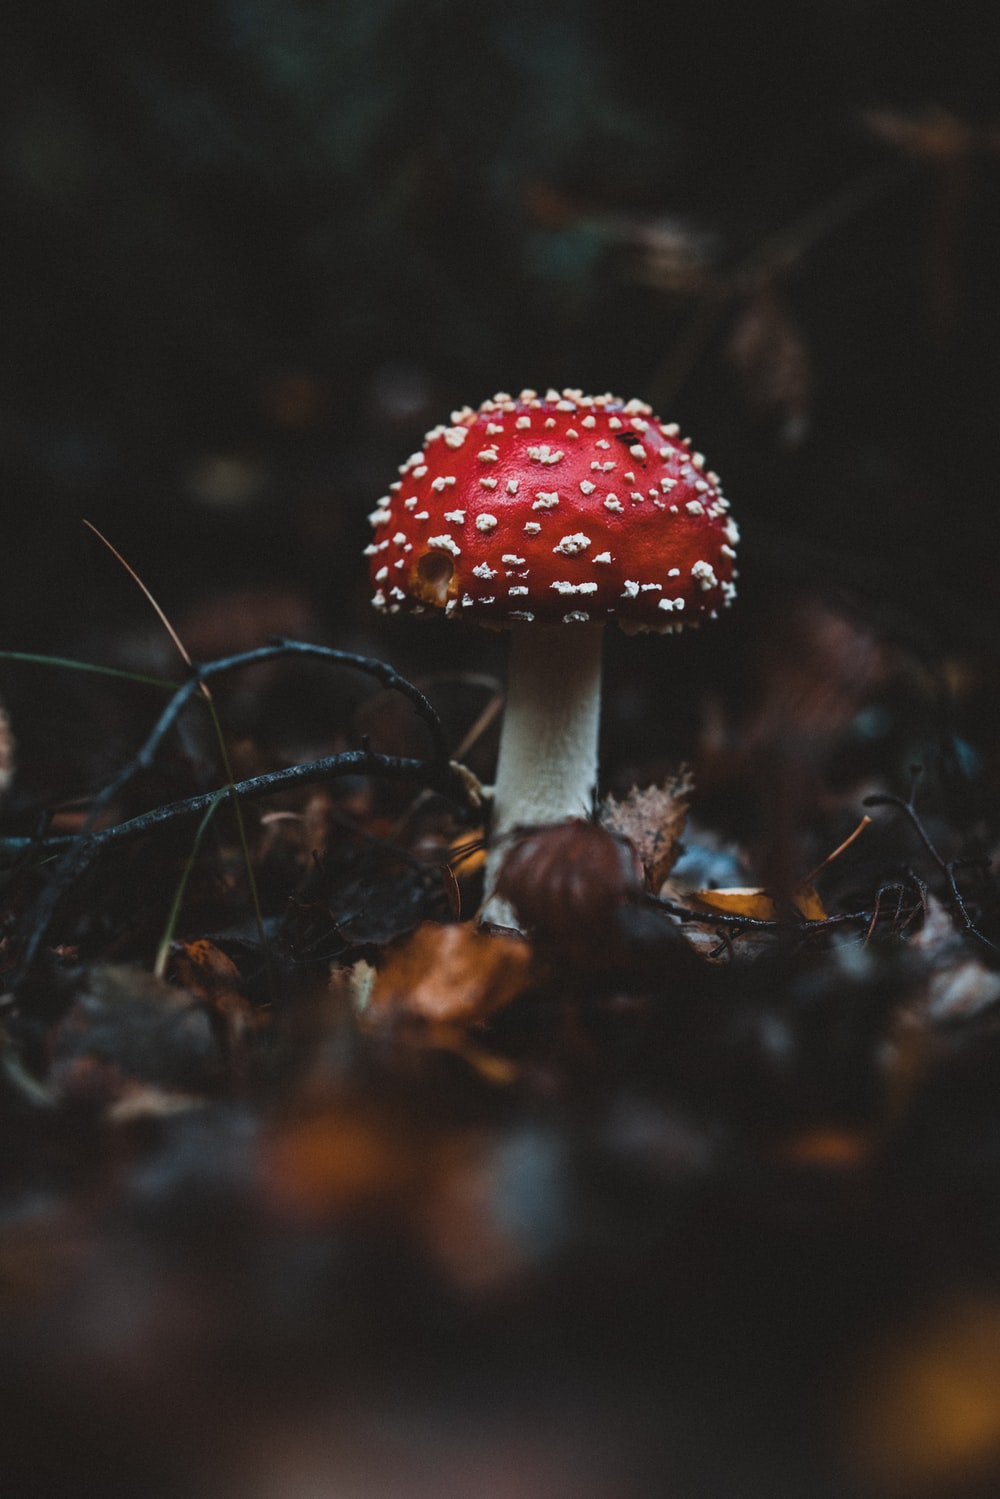 red and white mushroom in woods